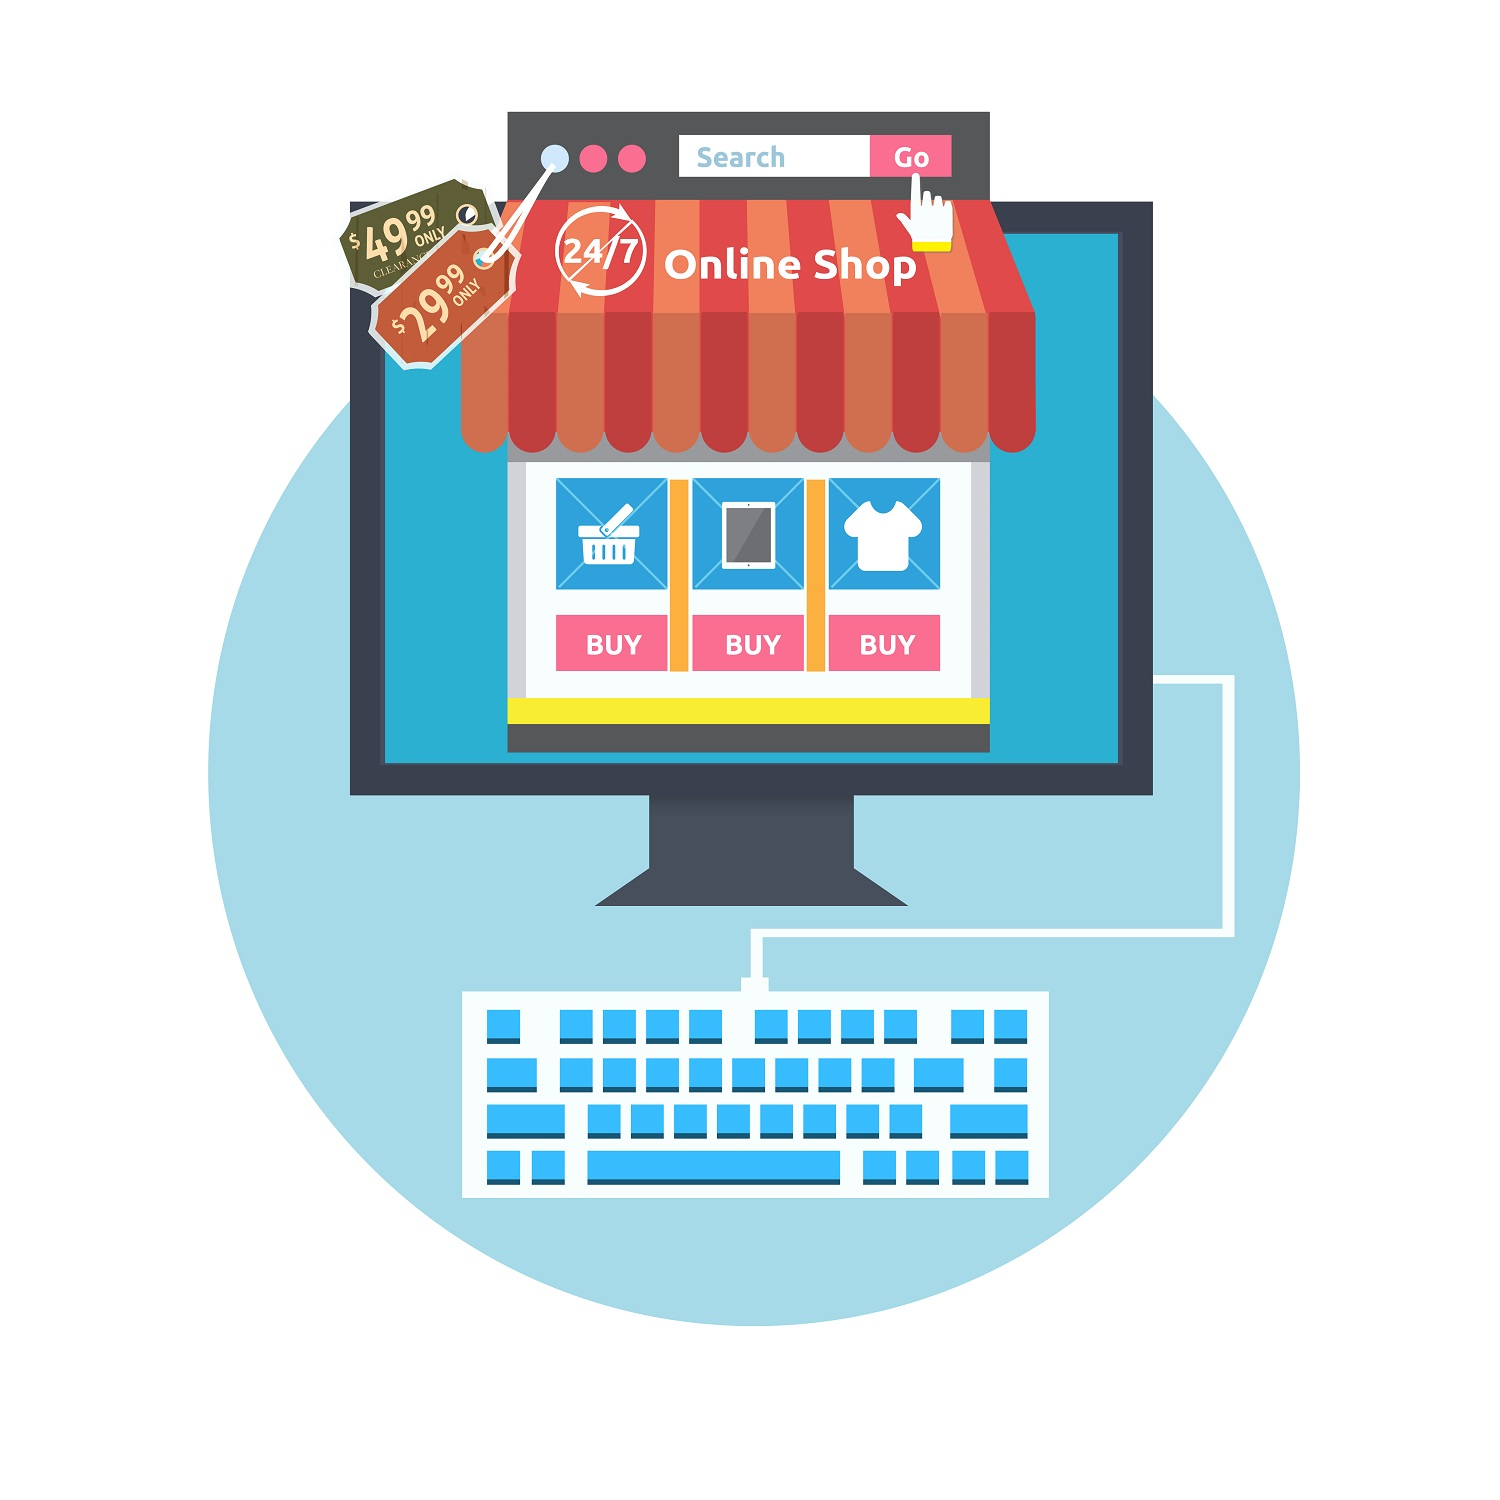 Ecommerce Web design practices